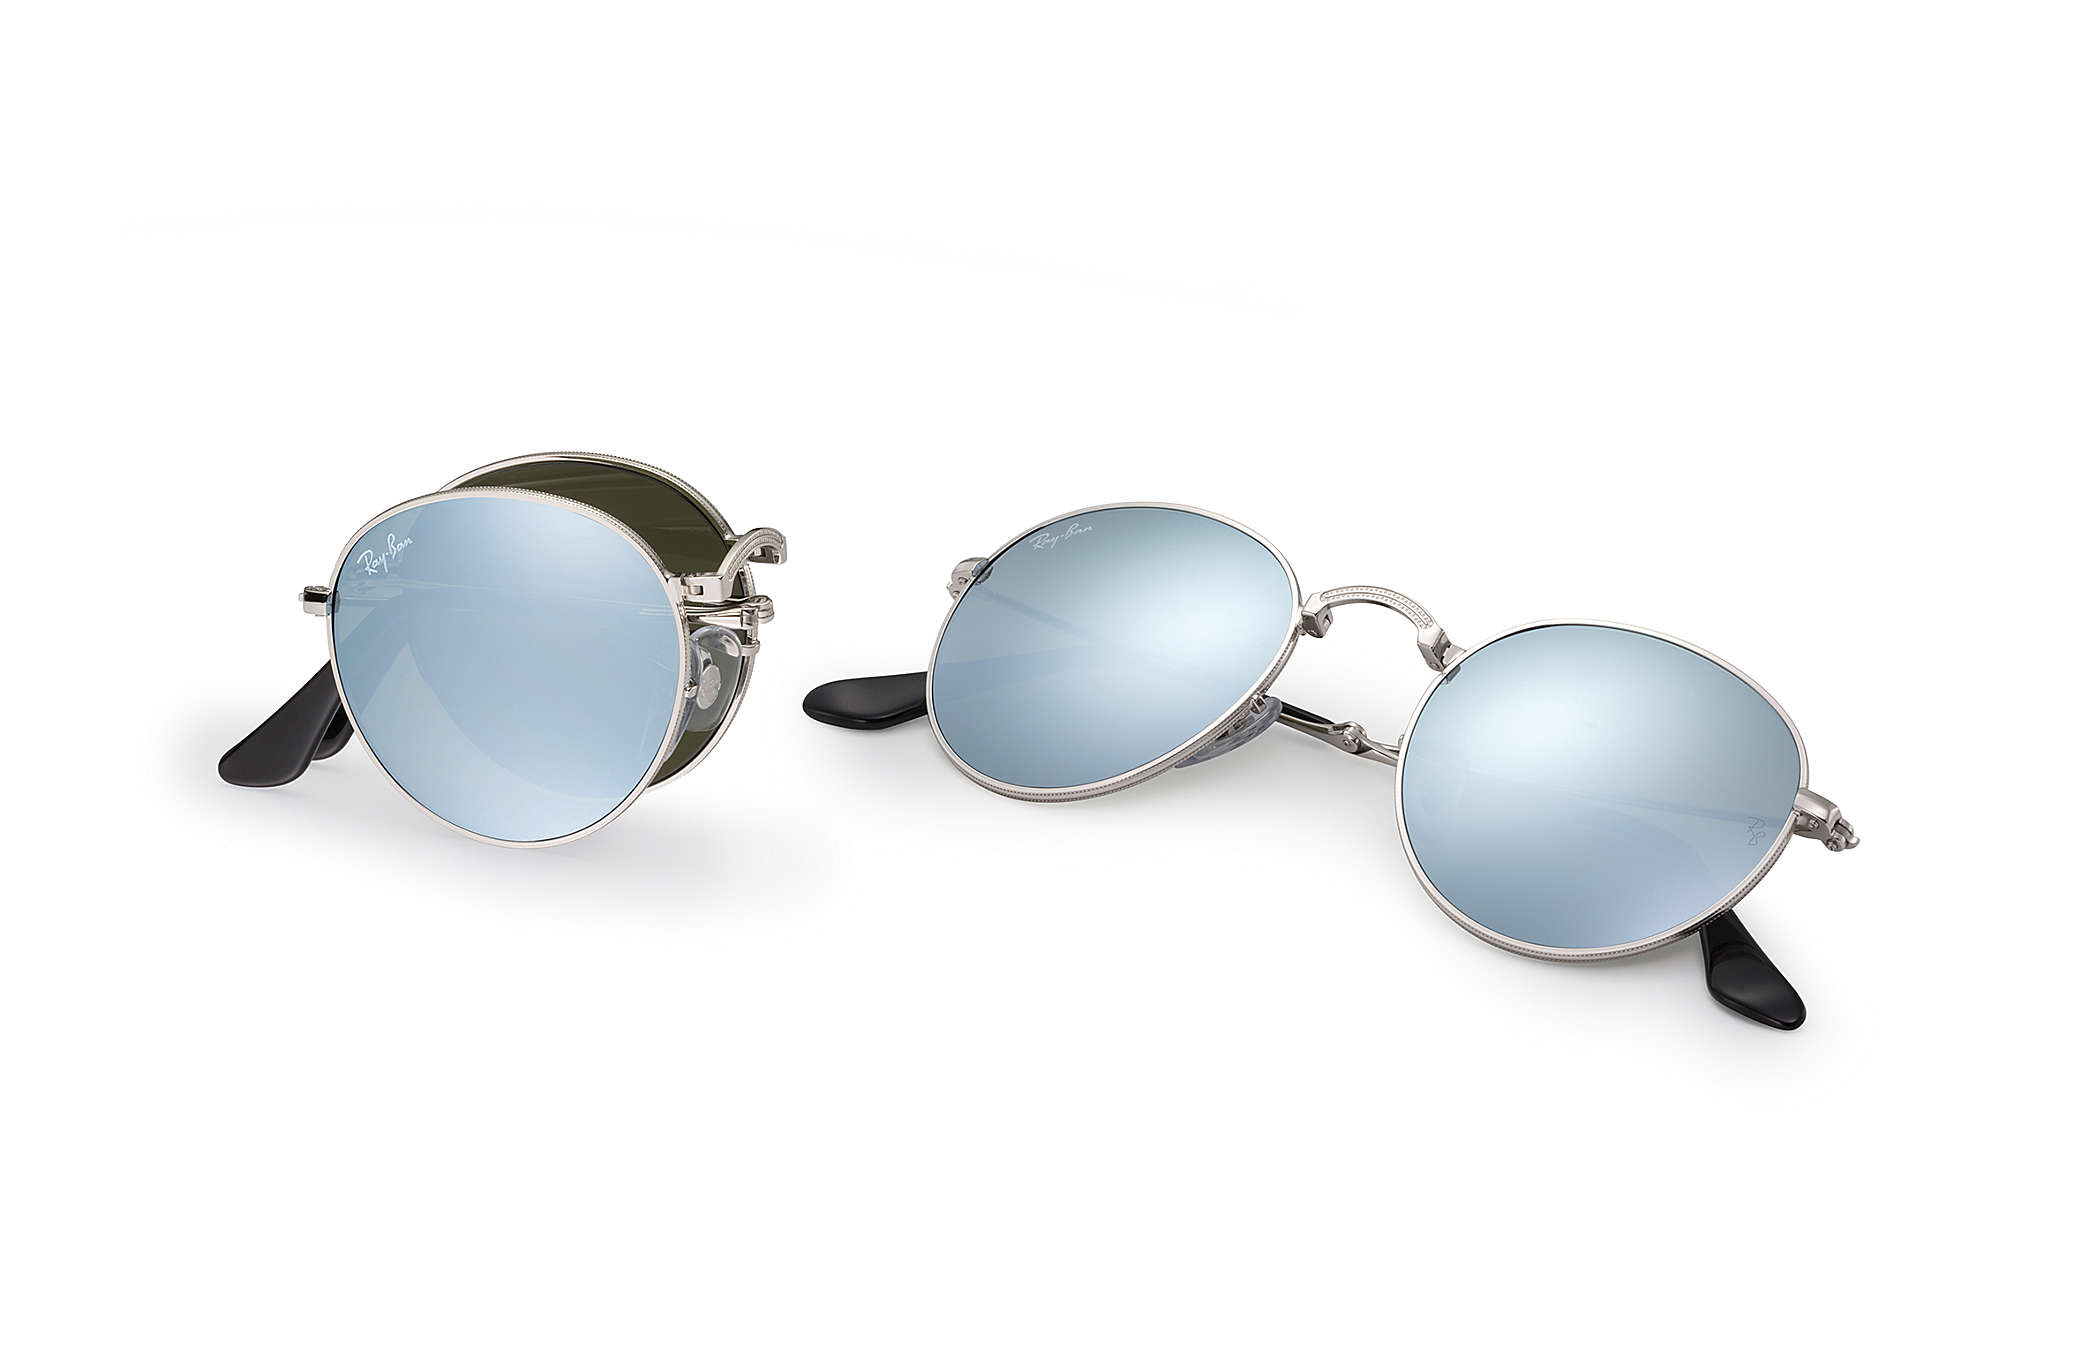 d6bab3684d Ray-Ban Round Metal Folding RB3532 Silver - Metal - Silver Lenses ...